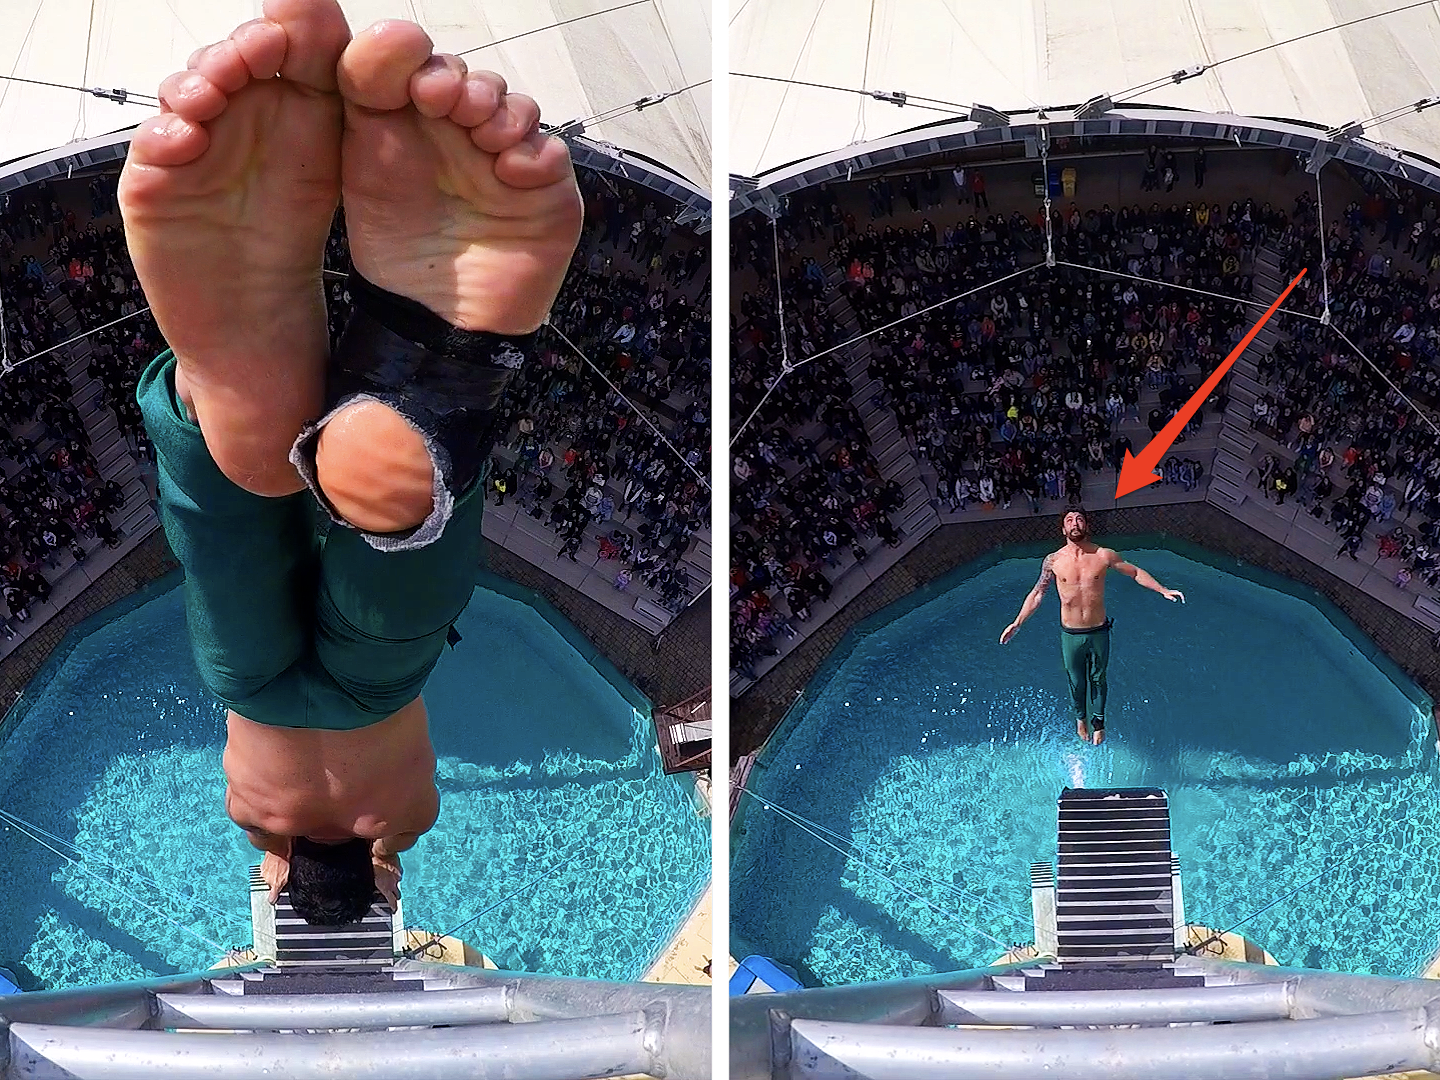 Professional Diver High Dives in front of audience